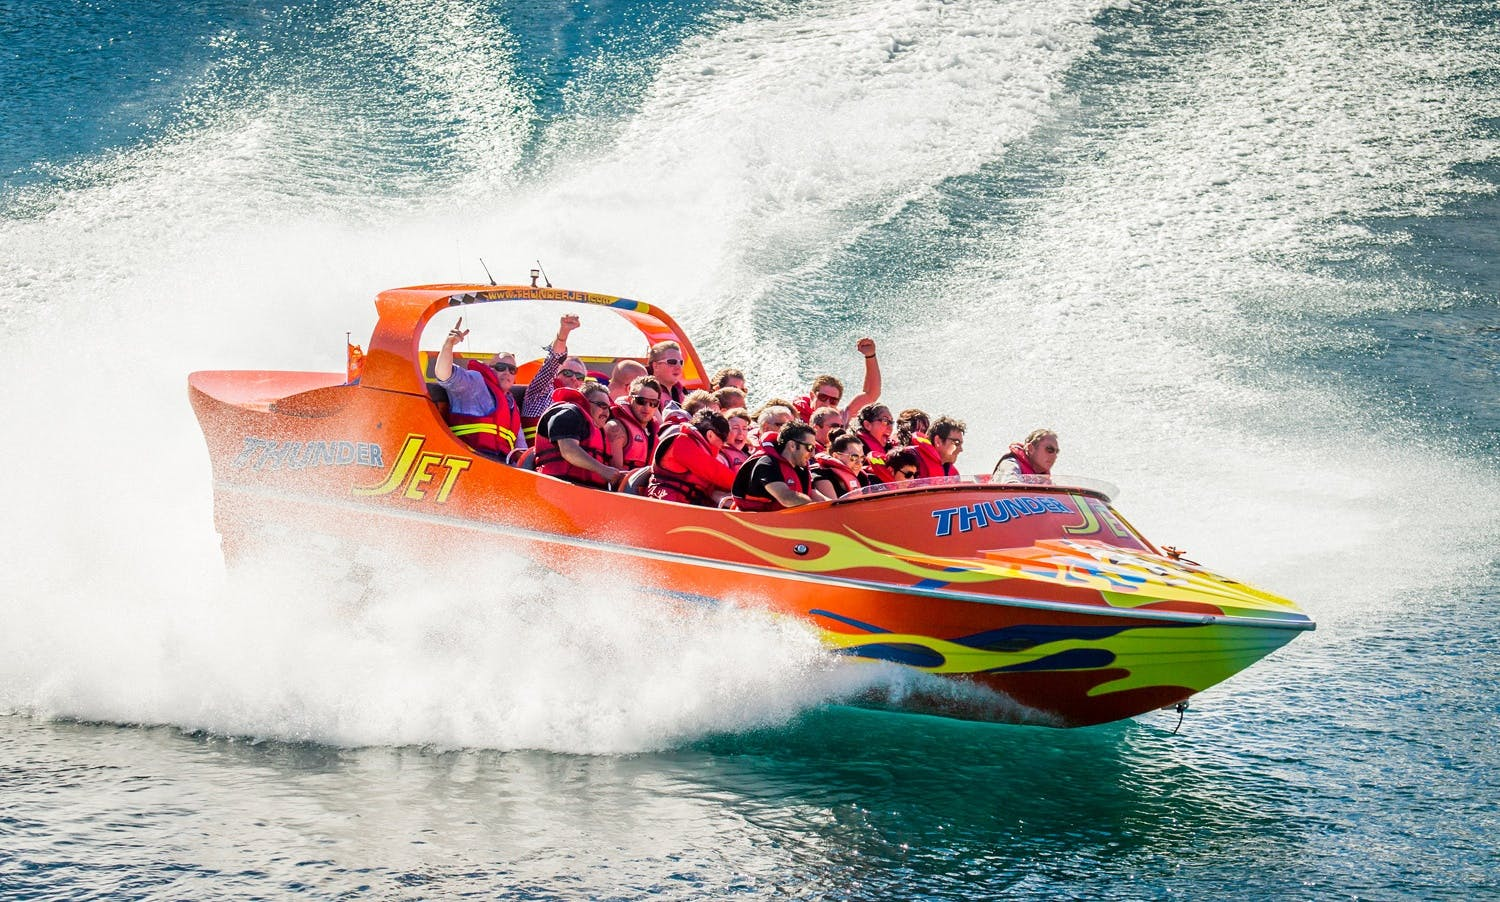 Jet Boat Tour and BBQ Buffet Experience in Queenstown